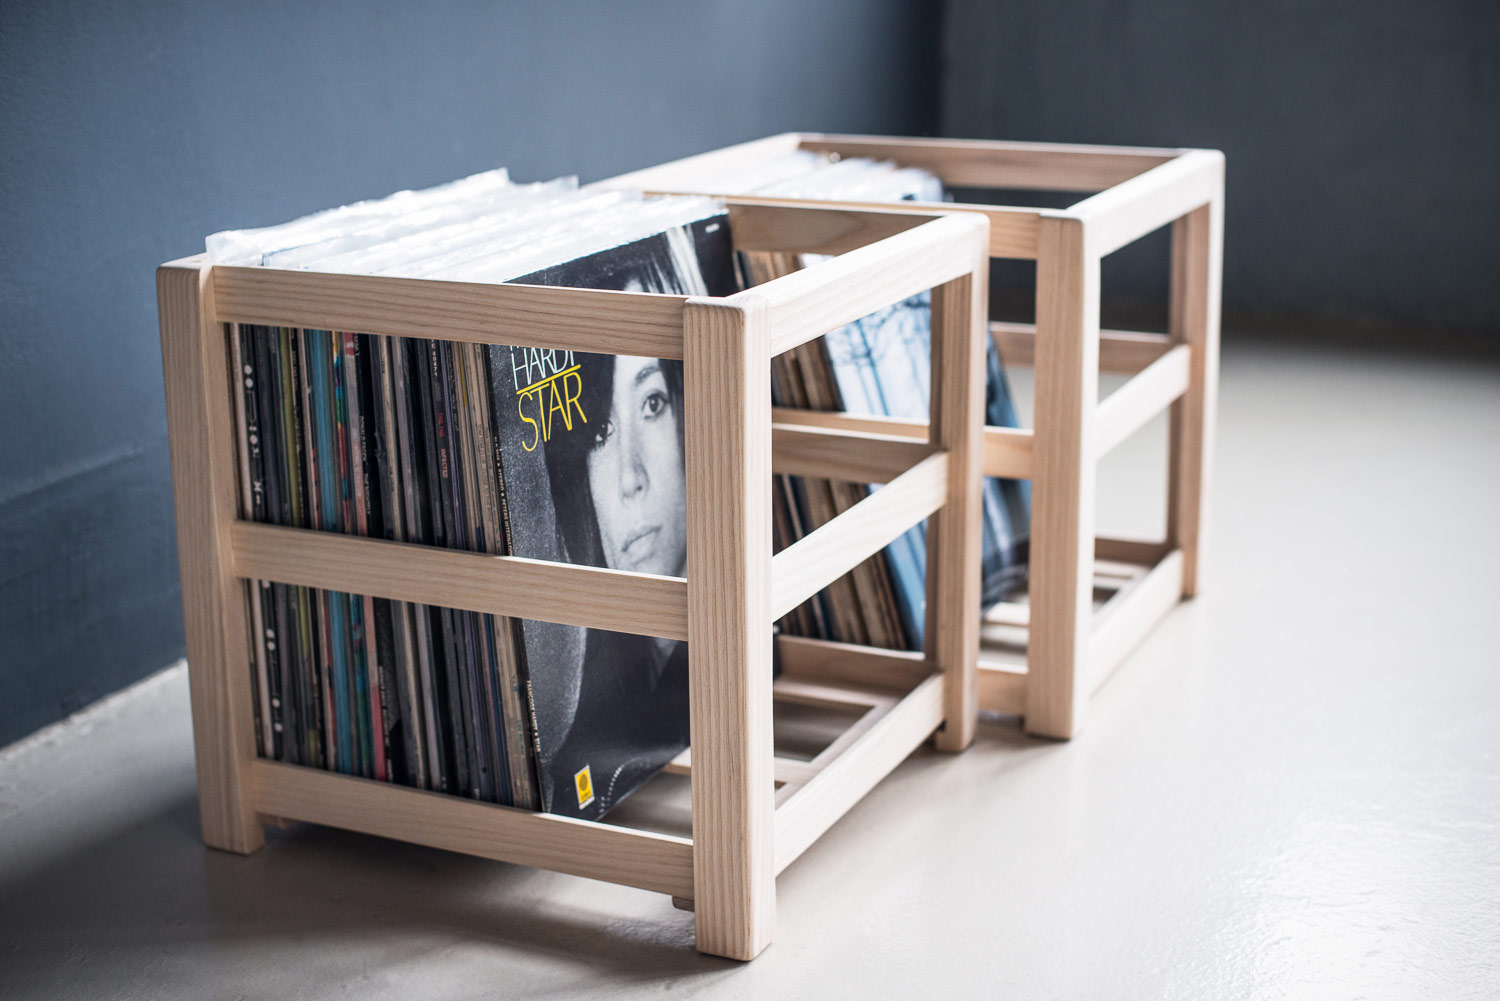 record crate audio-furniture